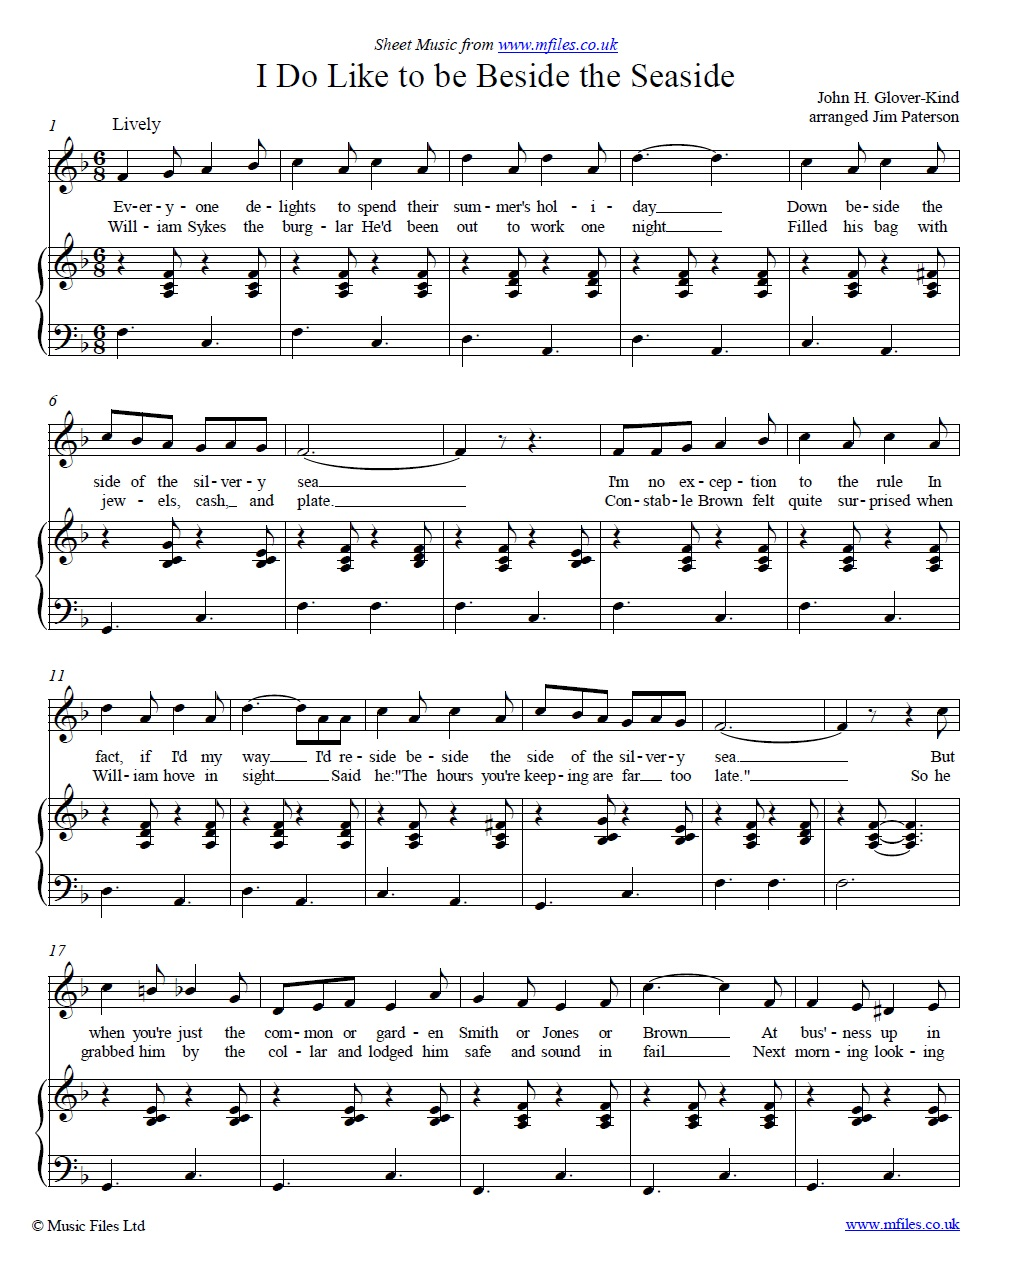 I Do Like to be Beside the Seaside (piano/vocal) - sheet music 1st page